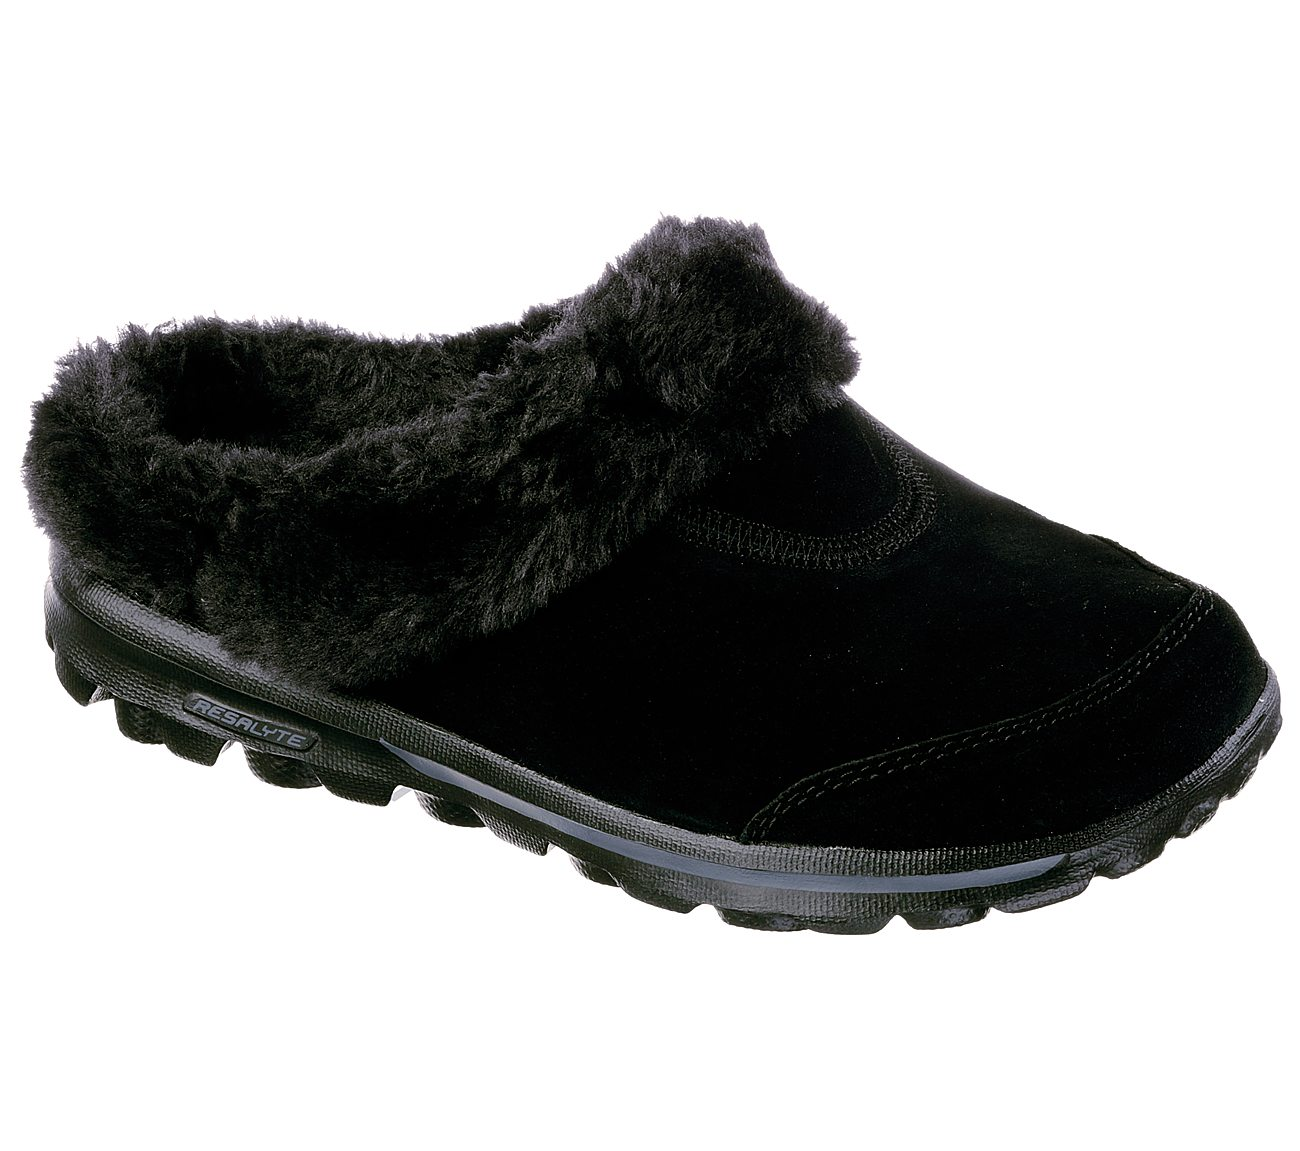 discount luxuriant in design sophisticated technologies Skechers GOwalk - Embrace